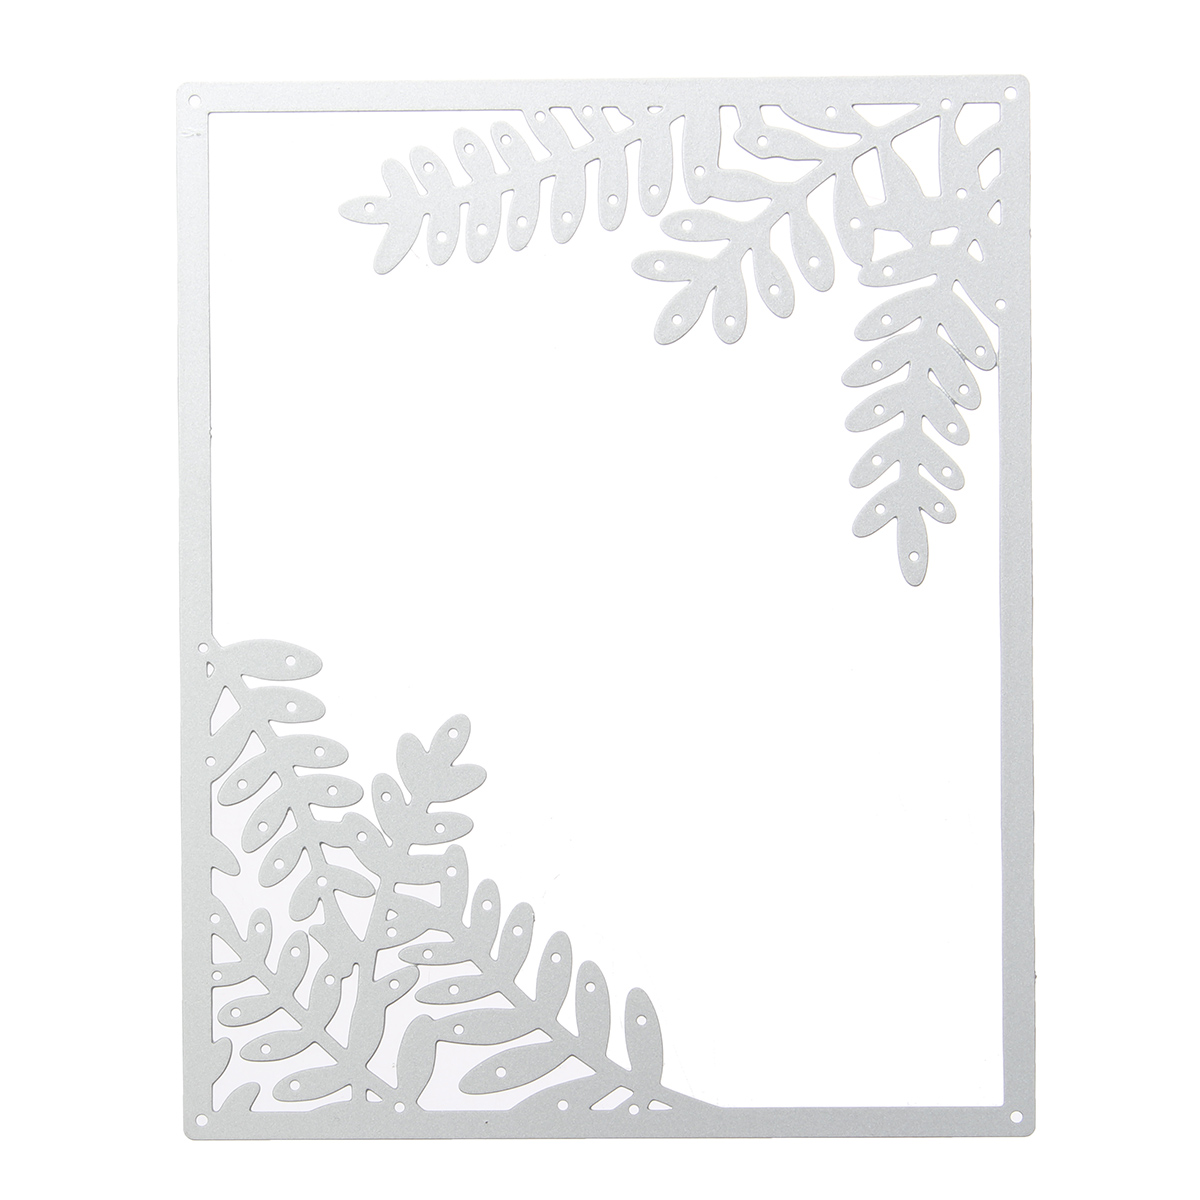 Leaves Square Frame Metal Cutting Dies Stencils DIY Scrapbooking Album Decorative Embossing Paper